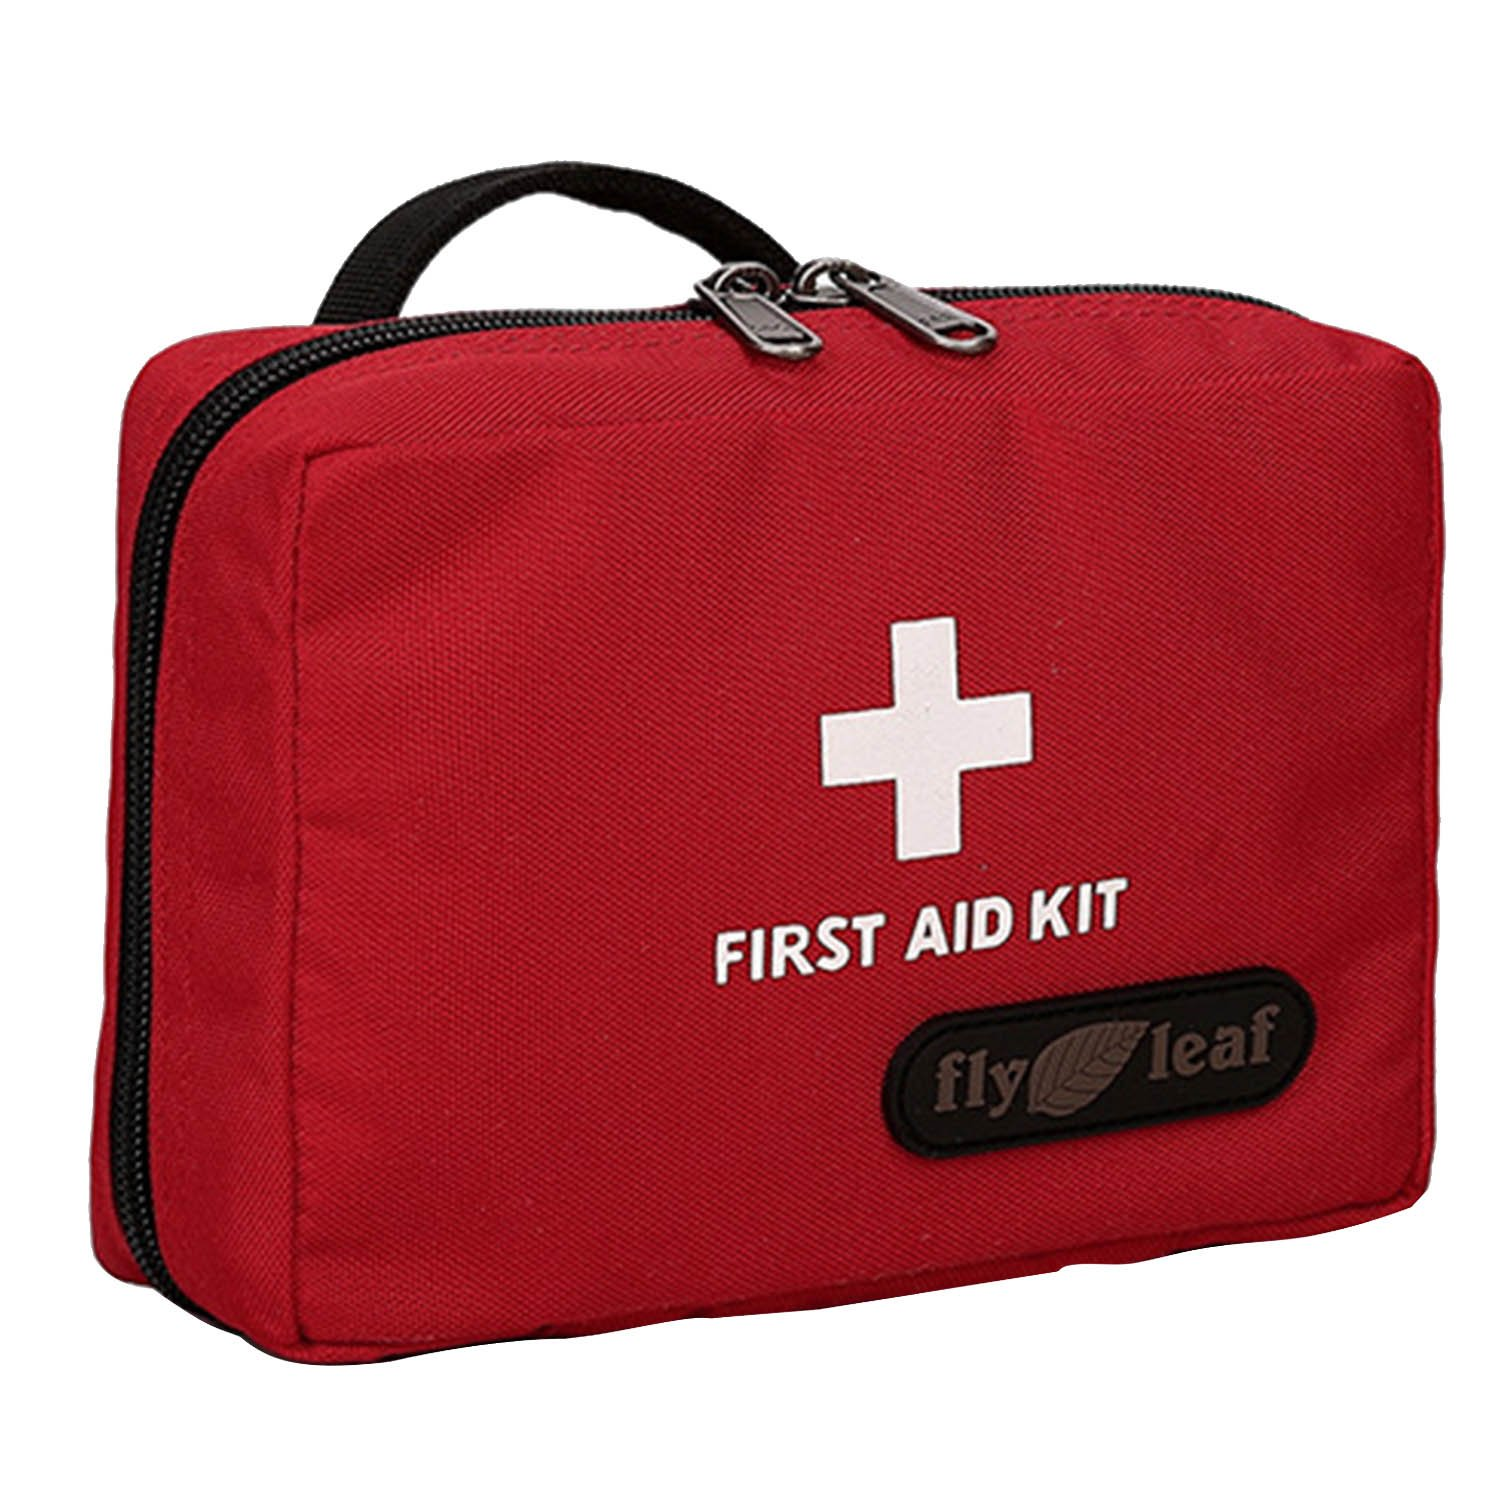 Portable First Aid Bag Travel Camping Home Outdoor Empty Medical Emergency Survival Emergency Kit Bag Waist Bag Pouch Hand Bag Red